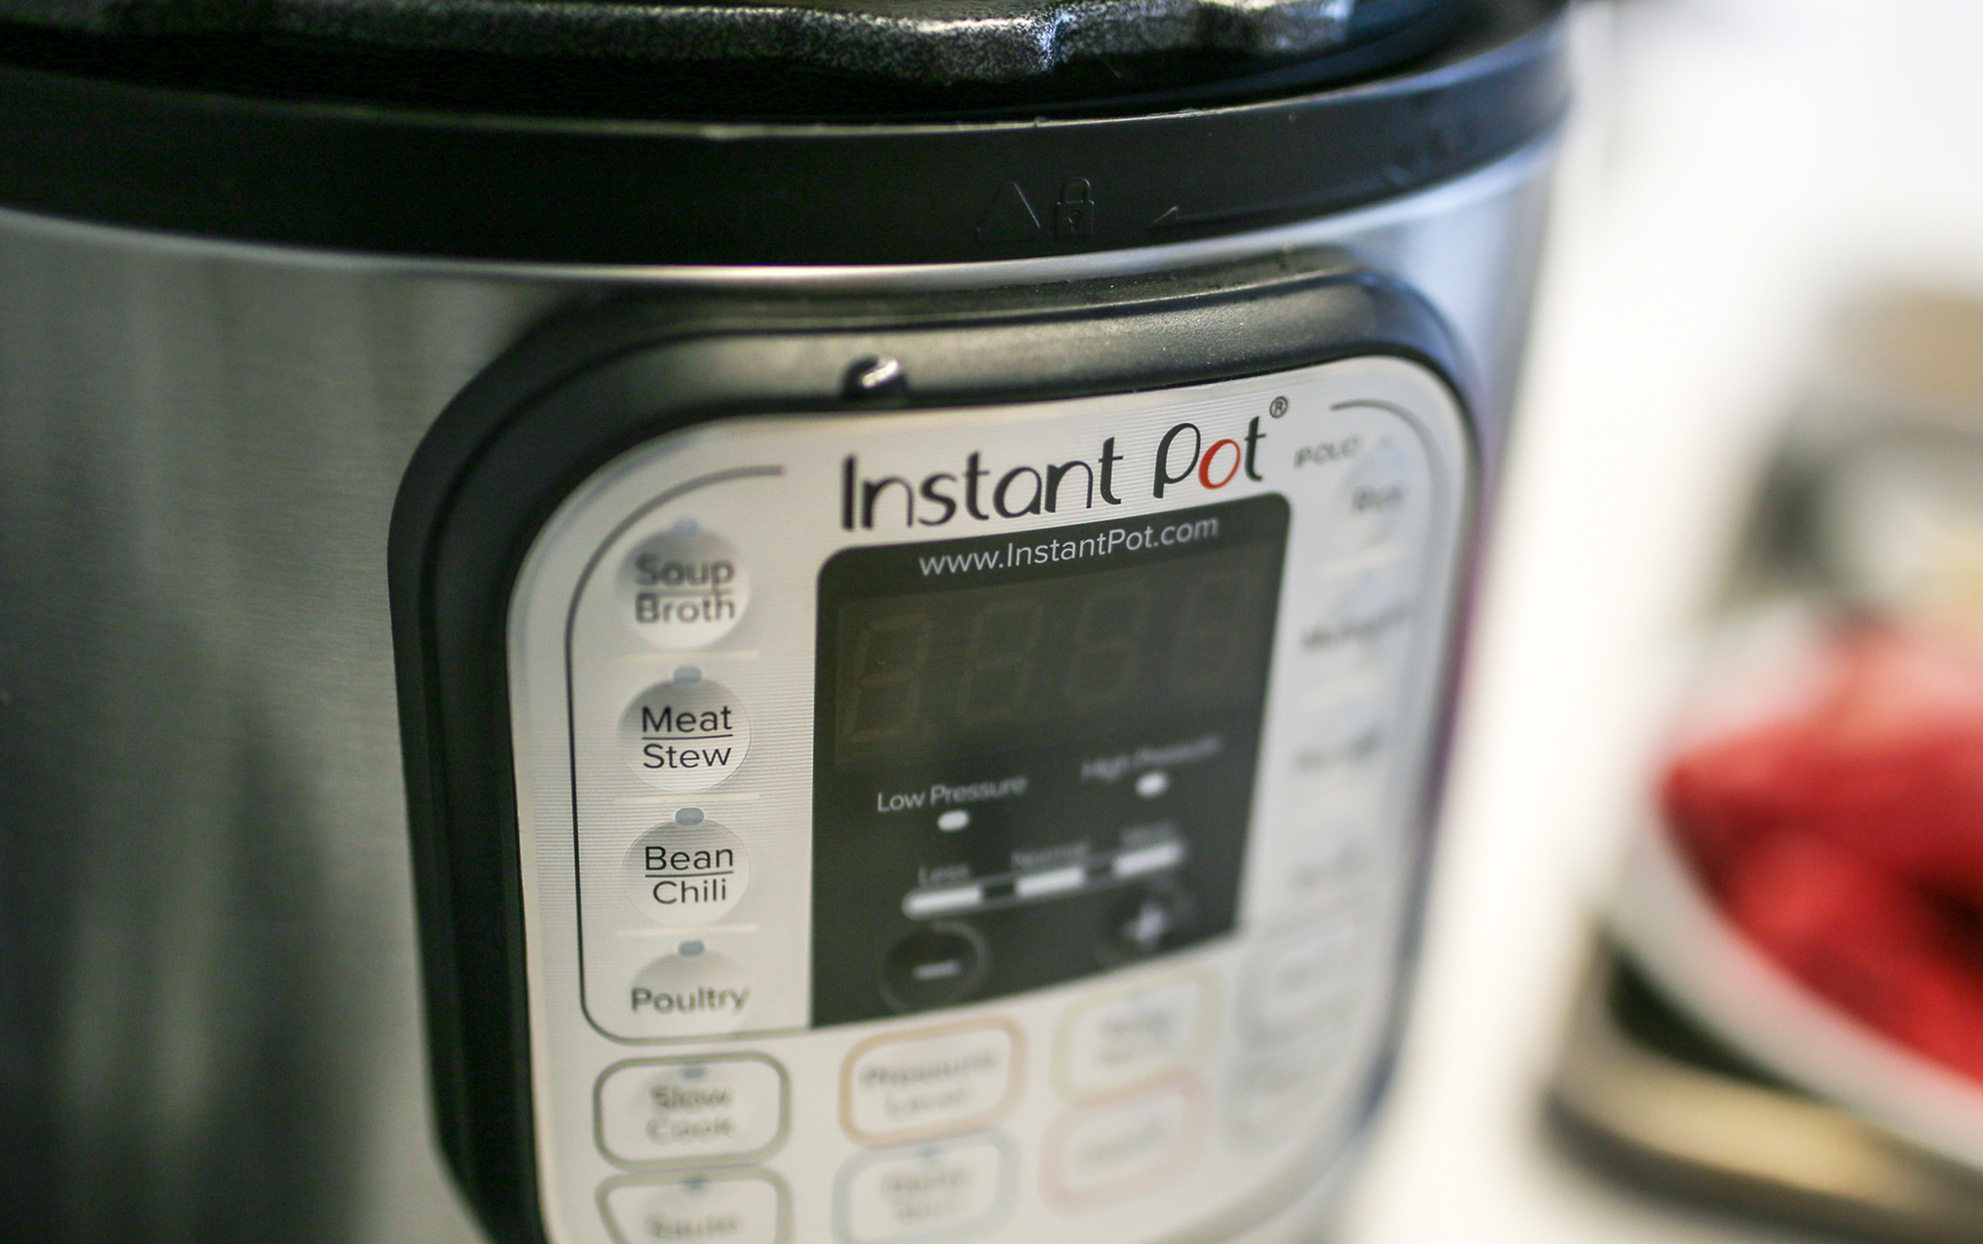 close up of an Instant Pot with blurry food in the background